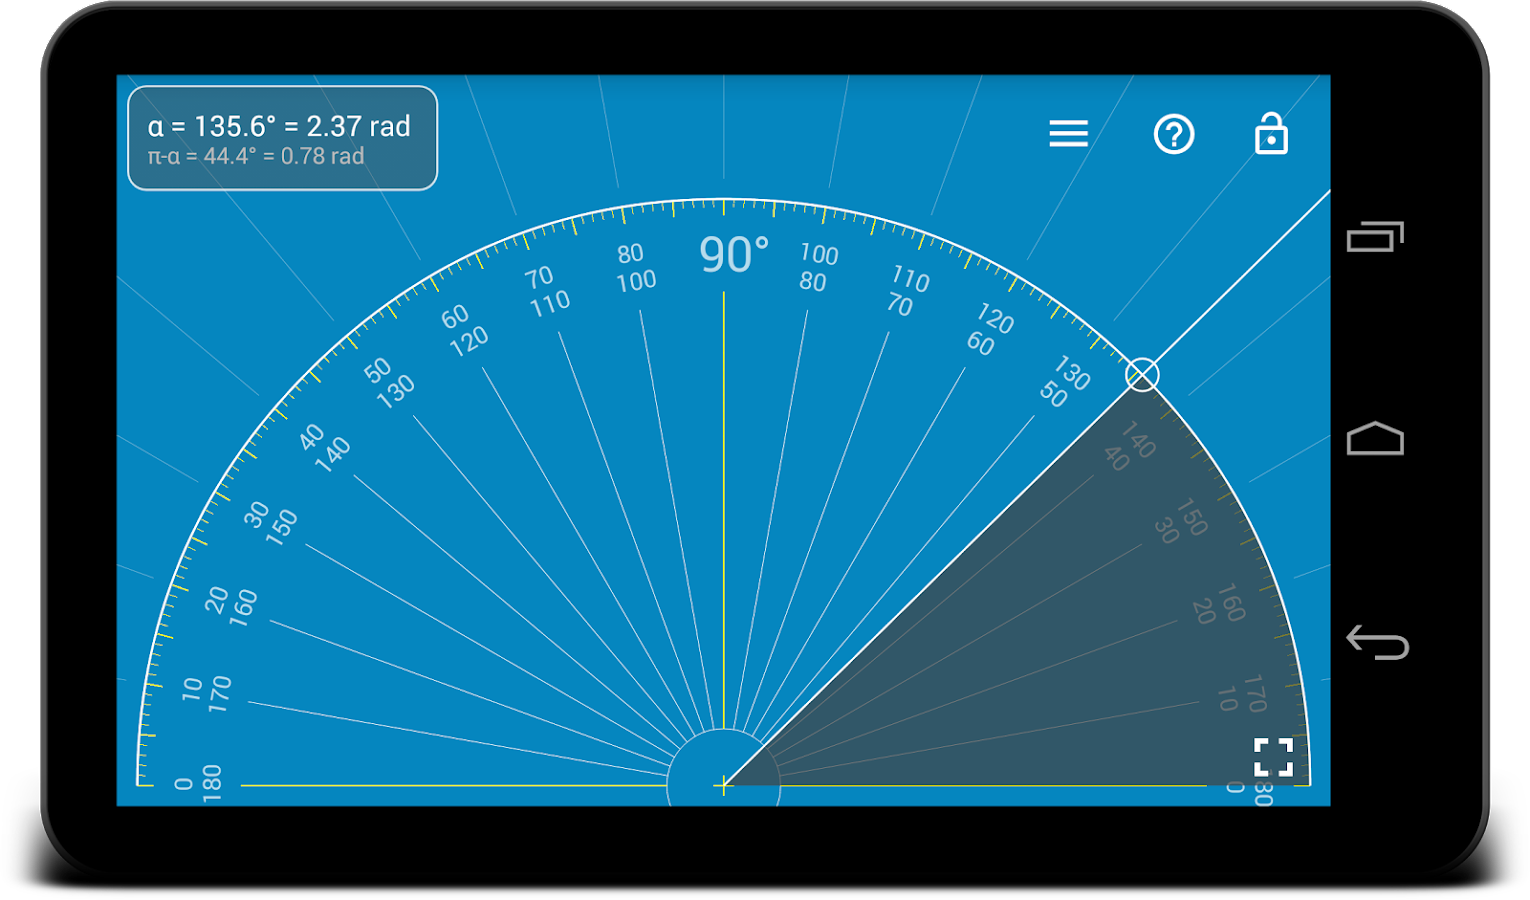 Millimeter Pro - ruler and protractor on screen- screenshot